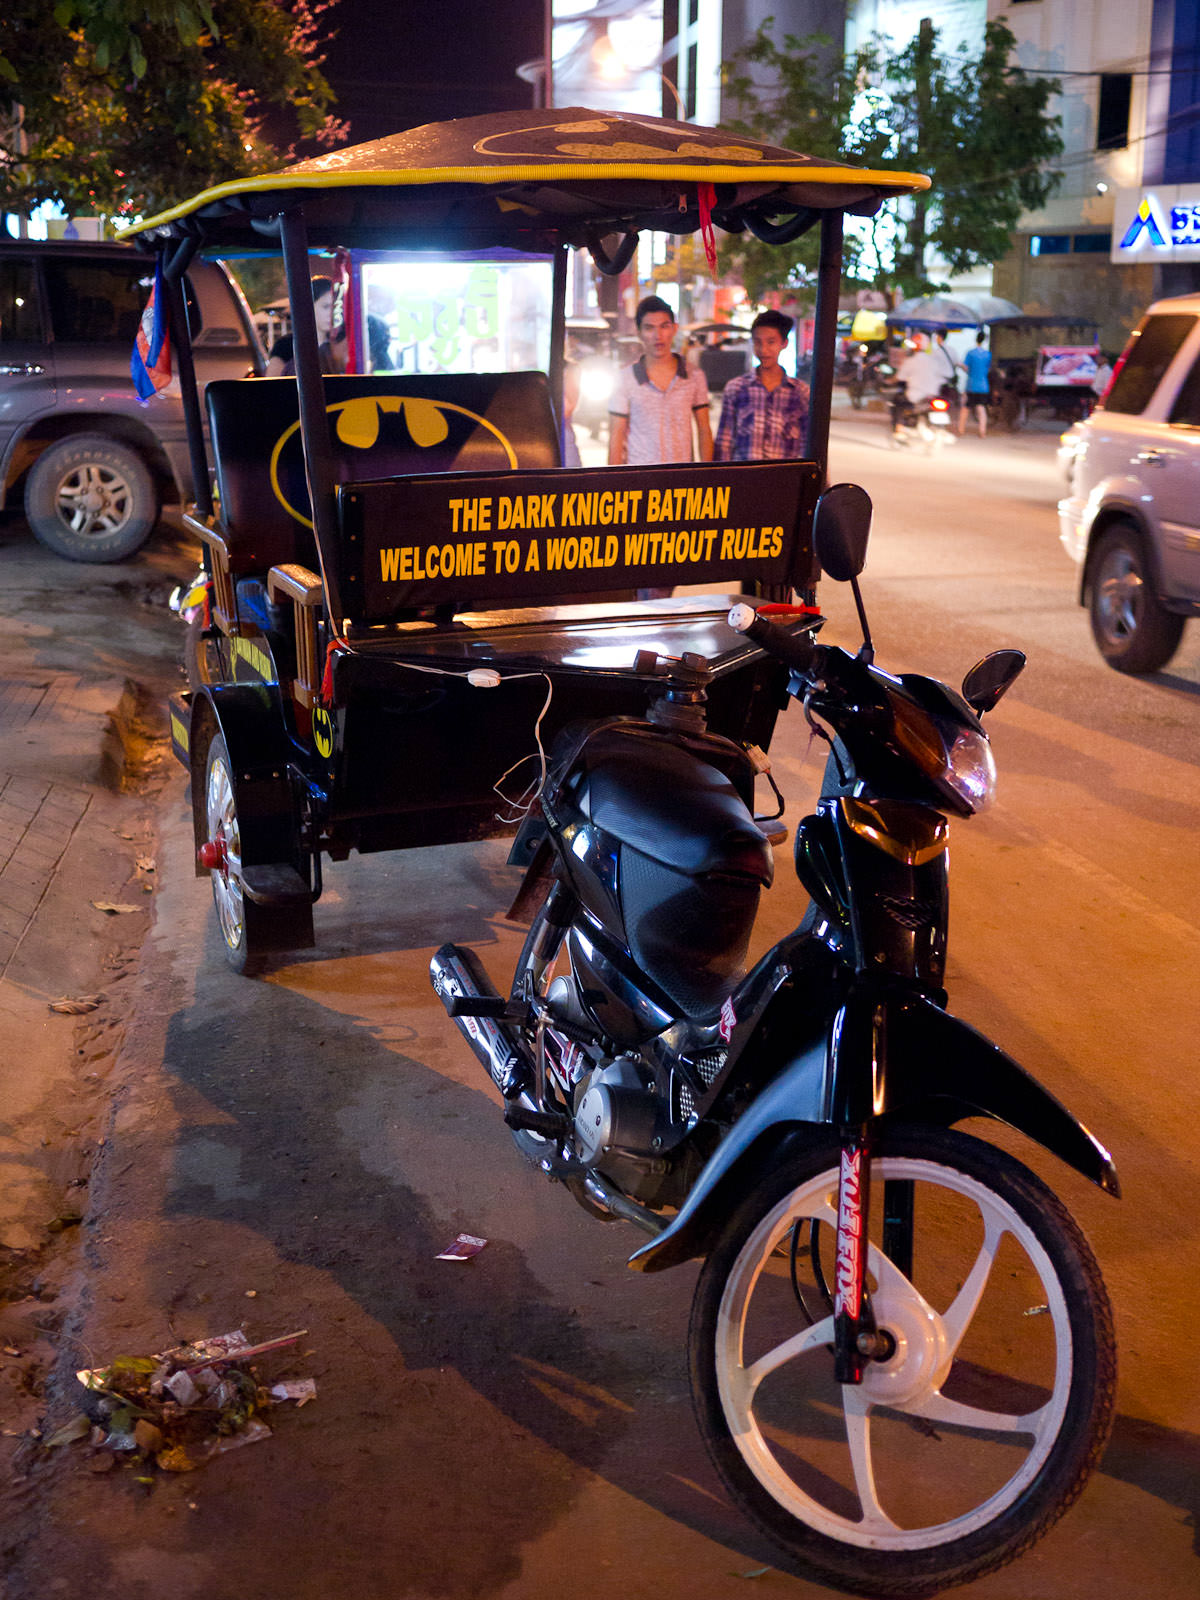 Batman tuk-tuk